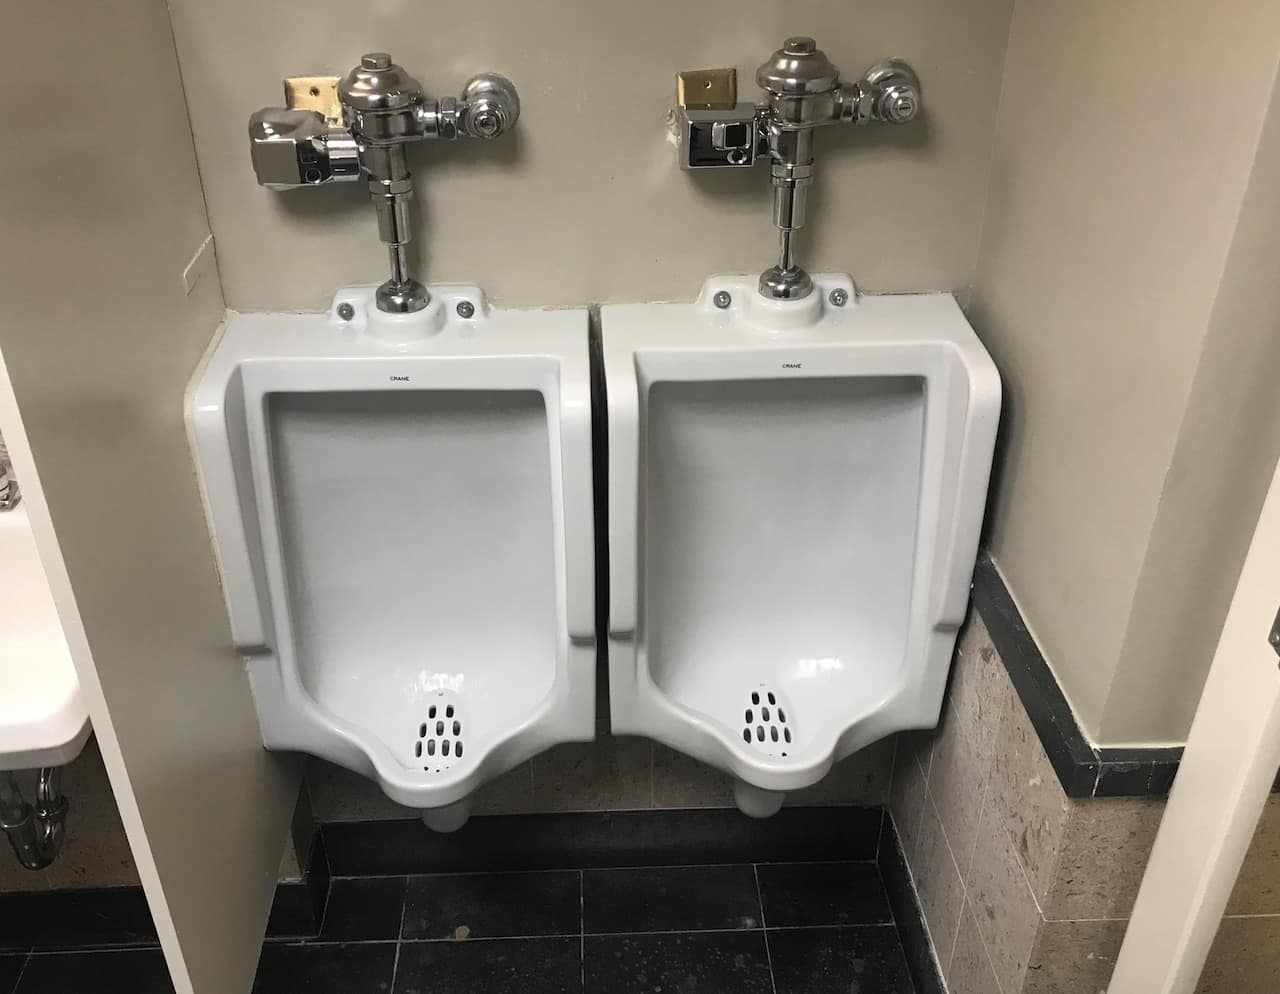 Urinals too close together at Bain & Co